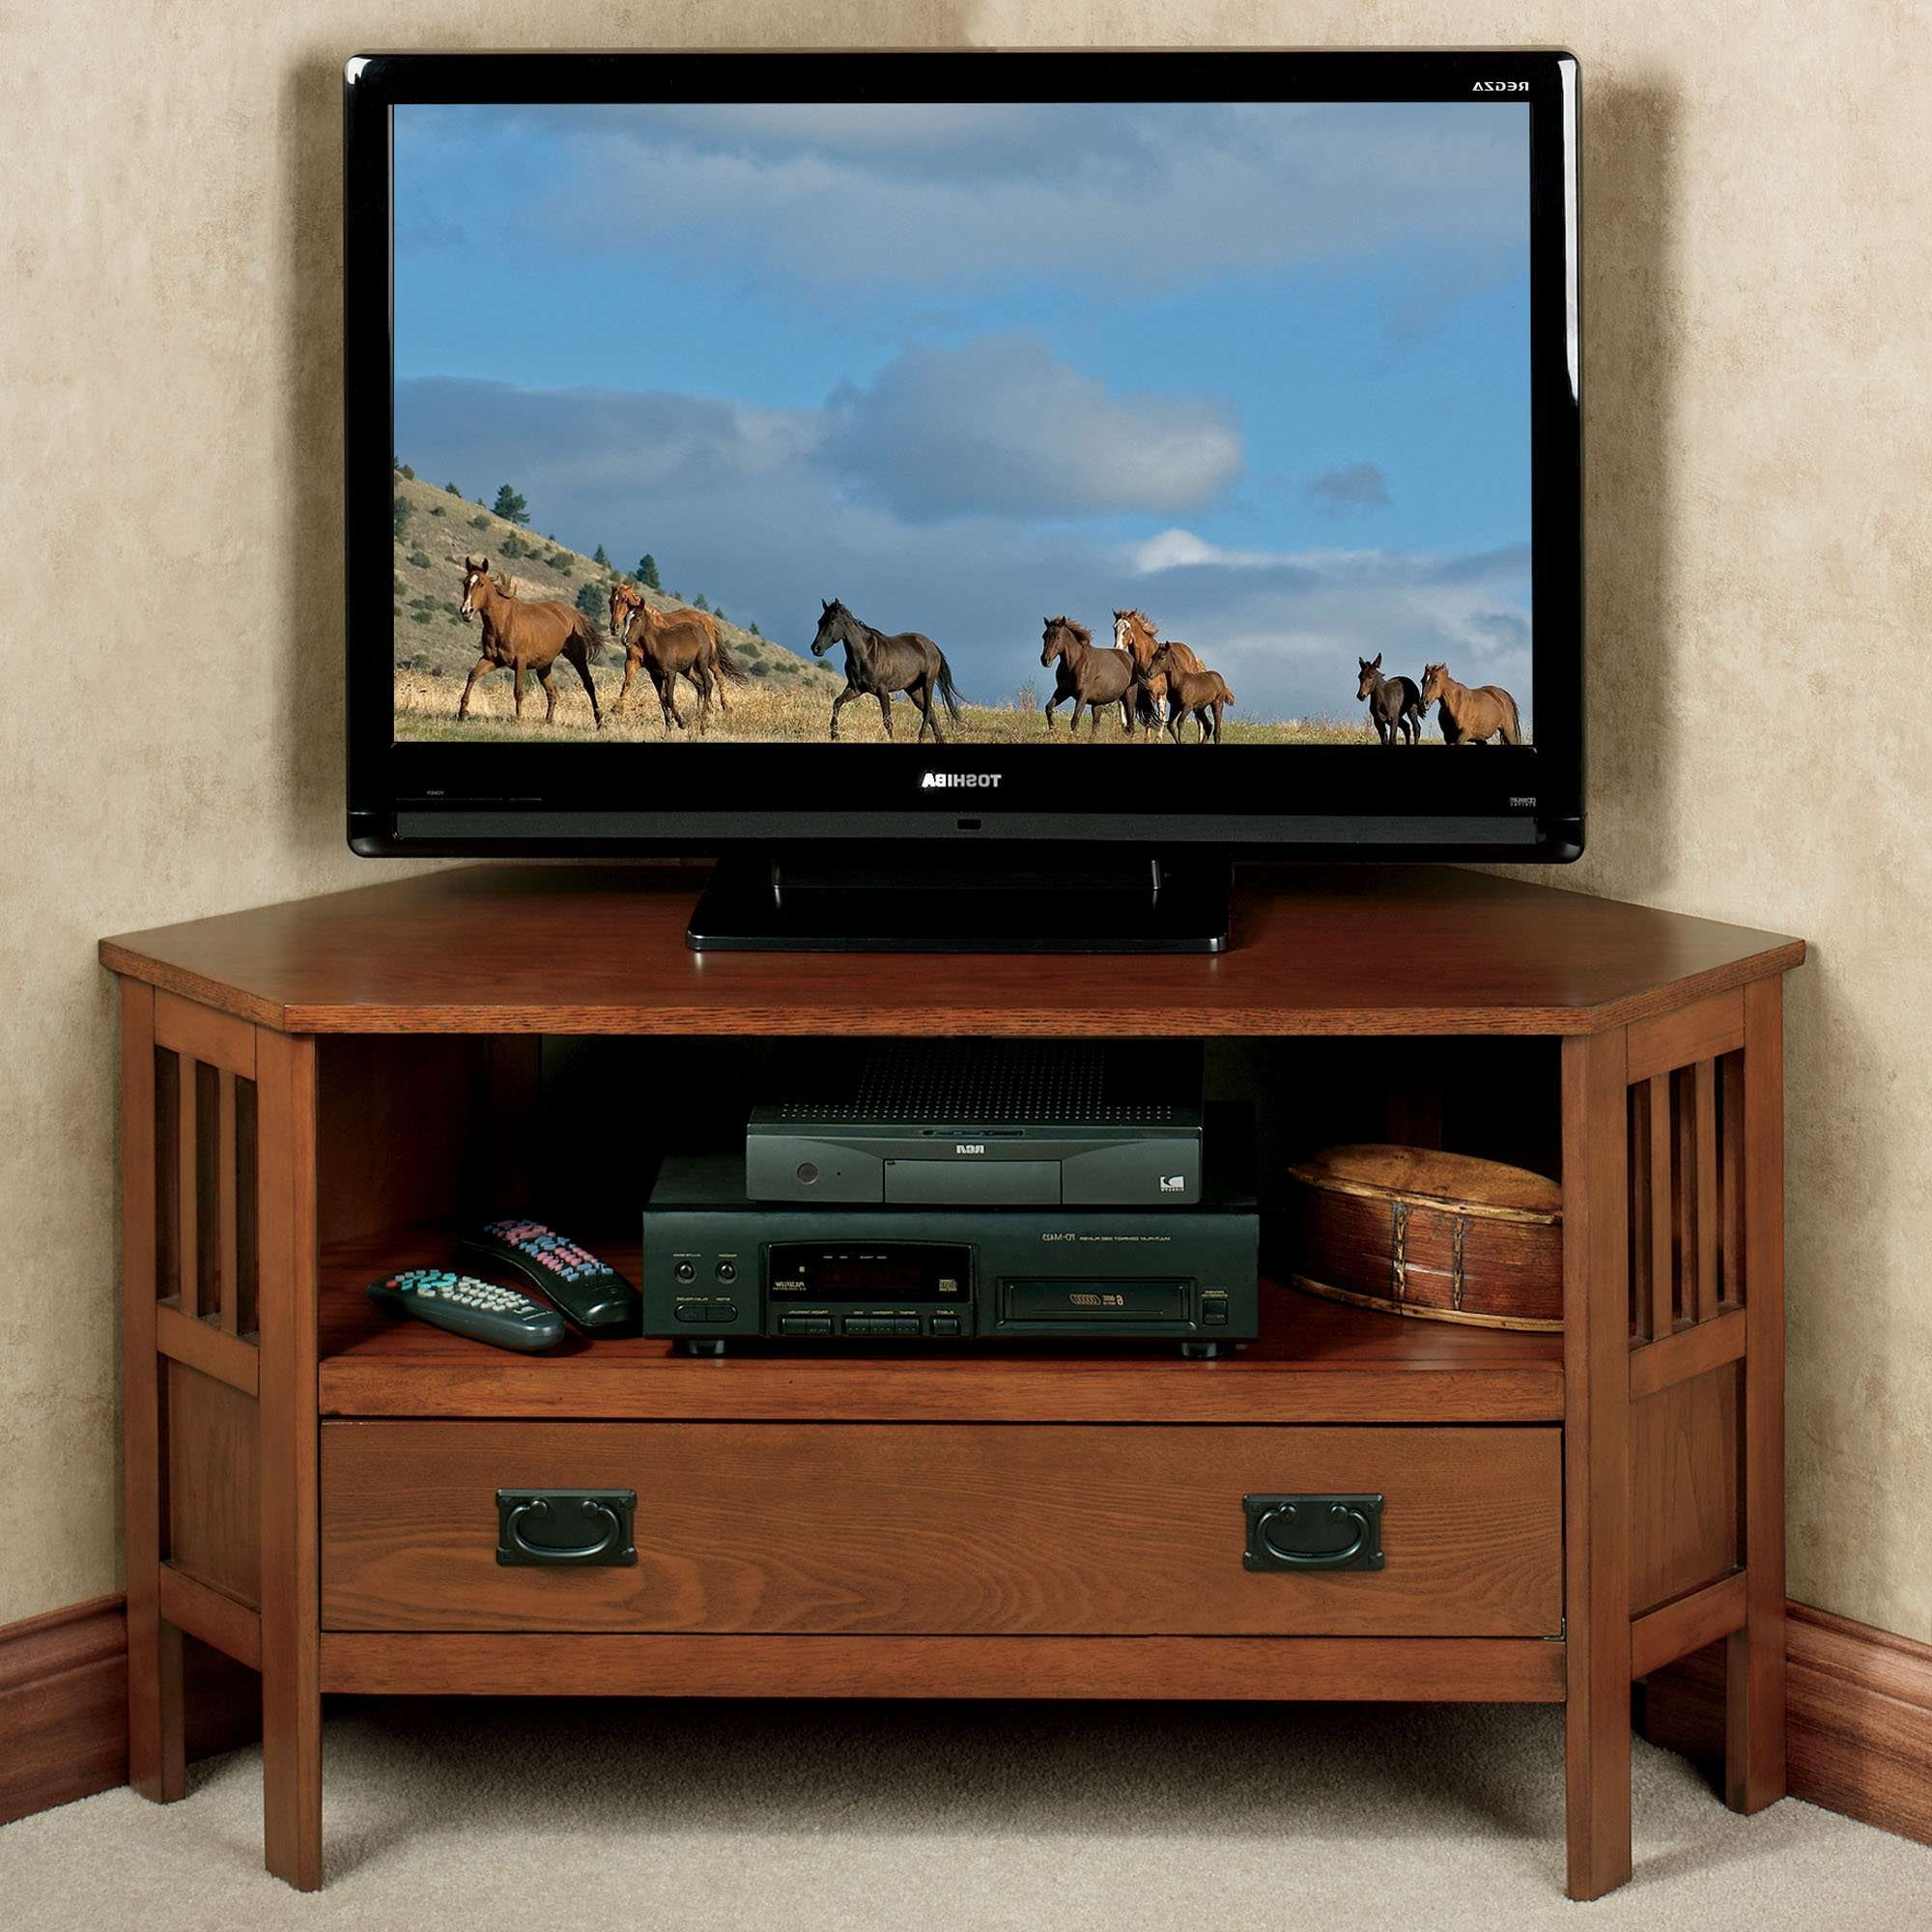 Home Decor: Alluring Wood Tv Stands For Flat Screens With Corner Intended For Corner Tv Stands With Drawers (View 8 of 15)